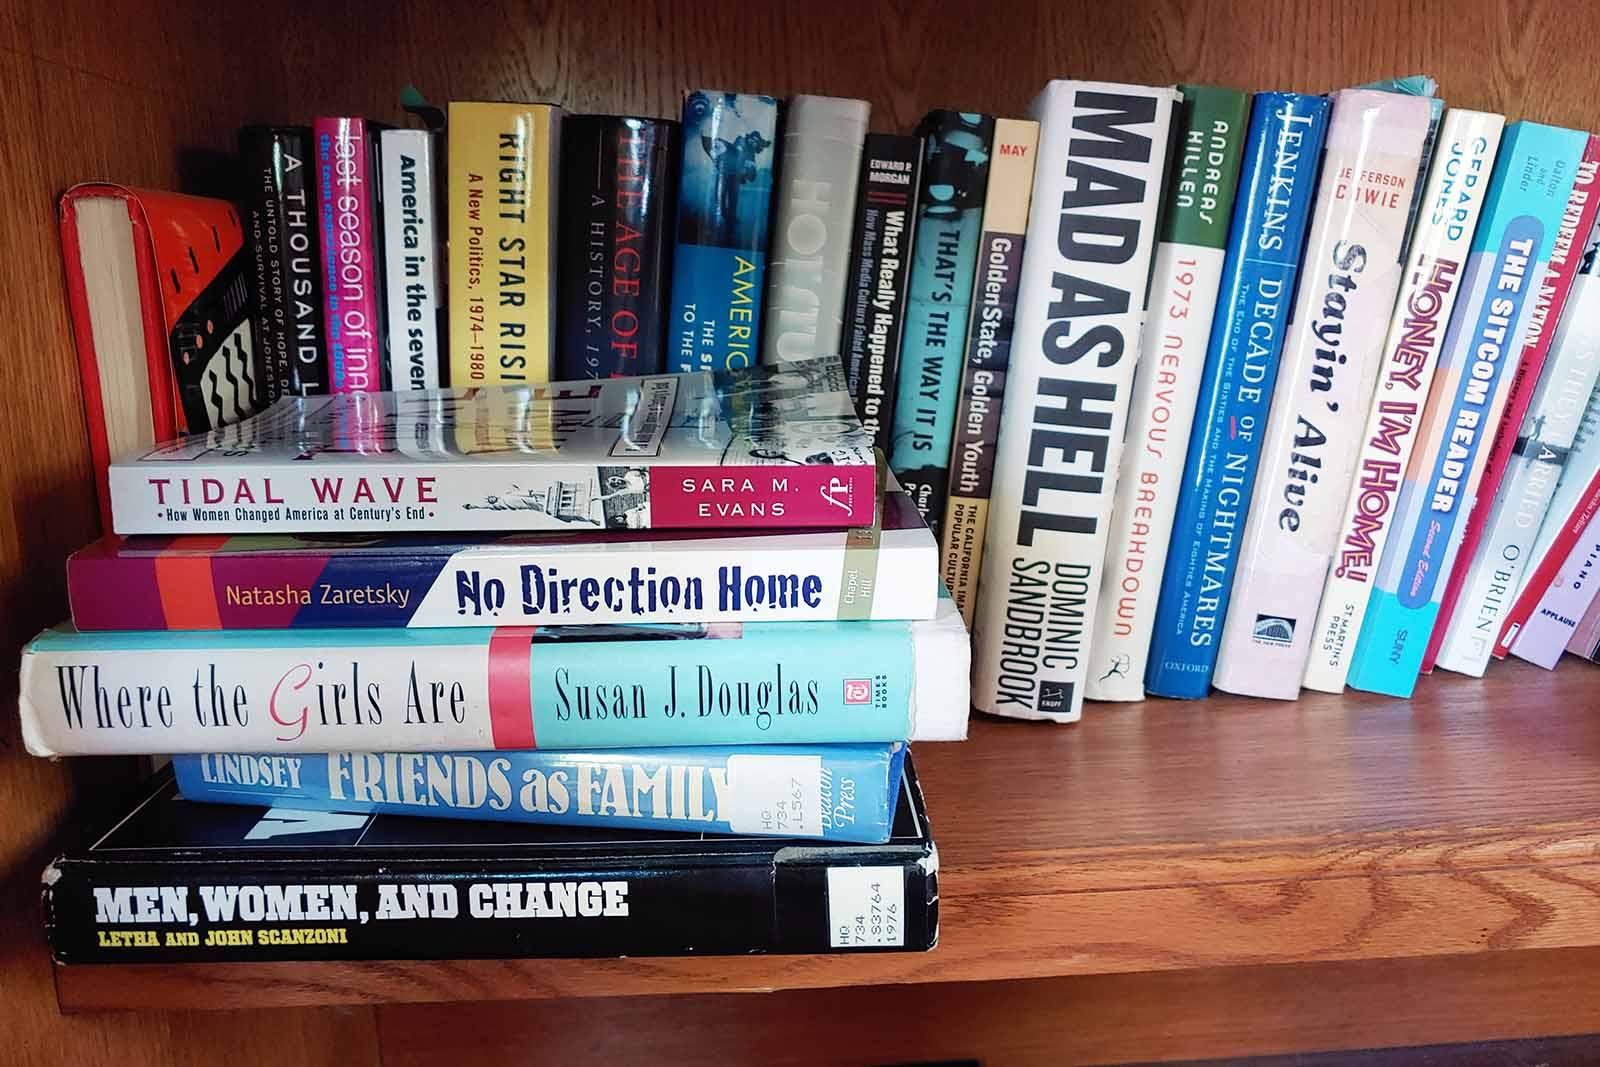 Just some of the books that Professor of History Judy Kutulas has read line the bookshelf underneath the desk in her study.